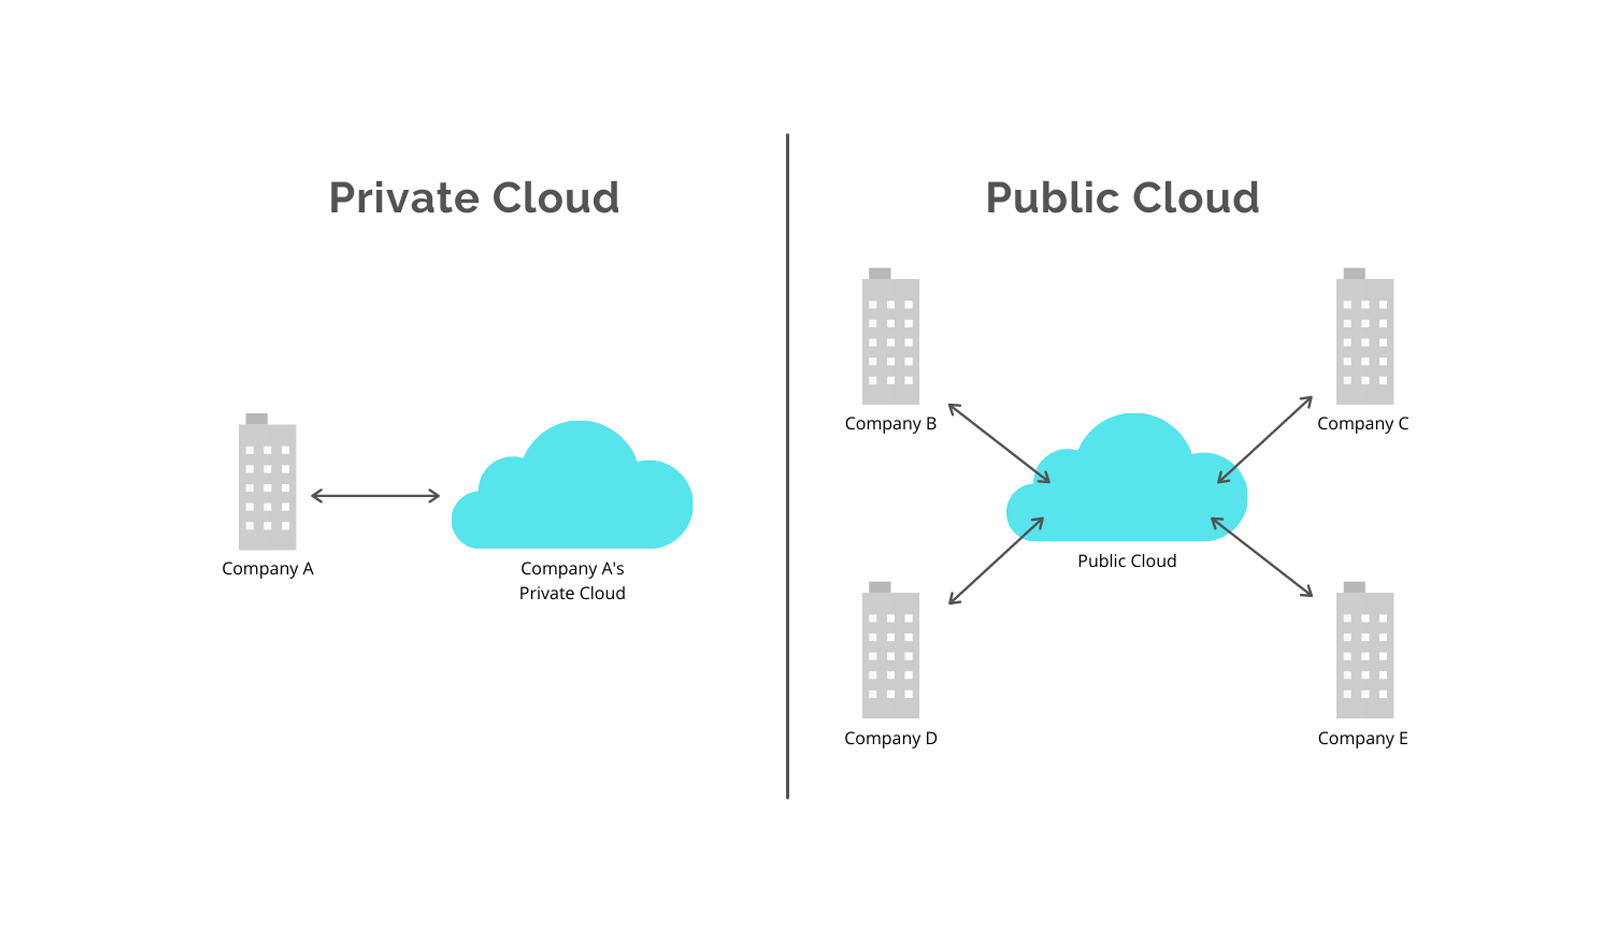 The difference between private could and public cloud work environments.